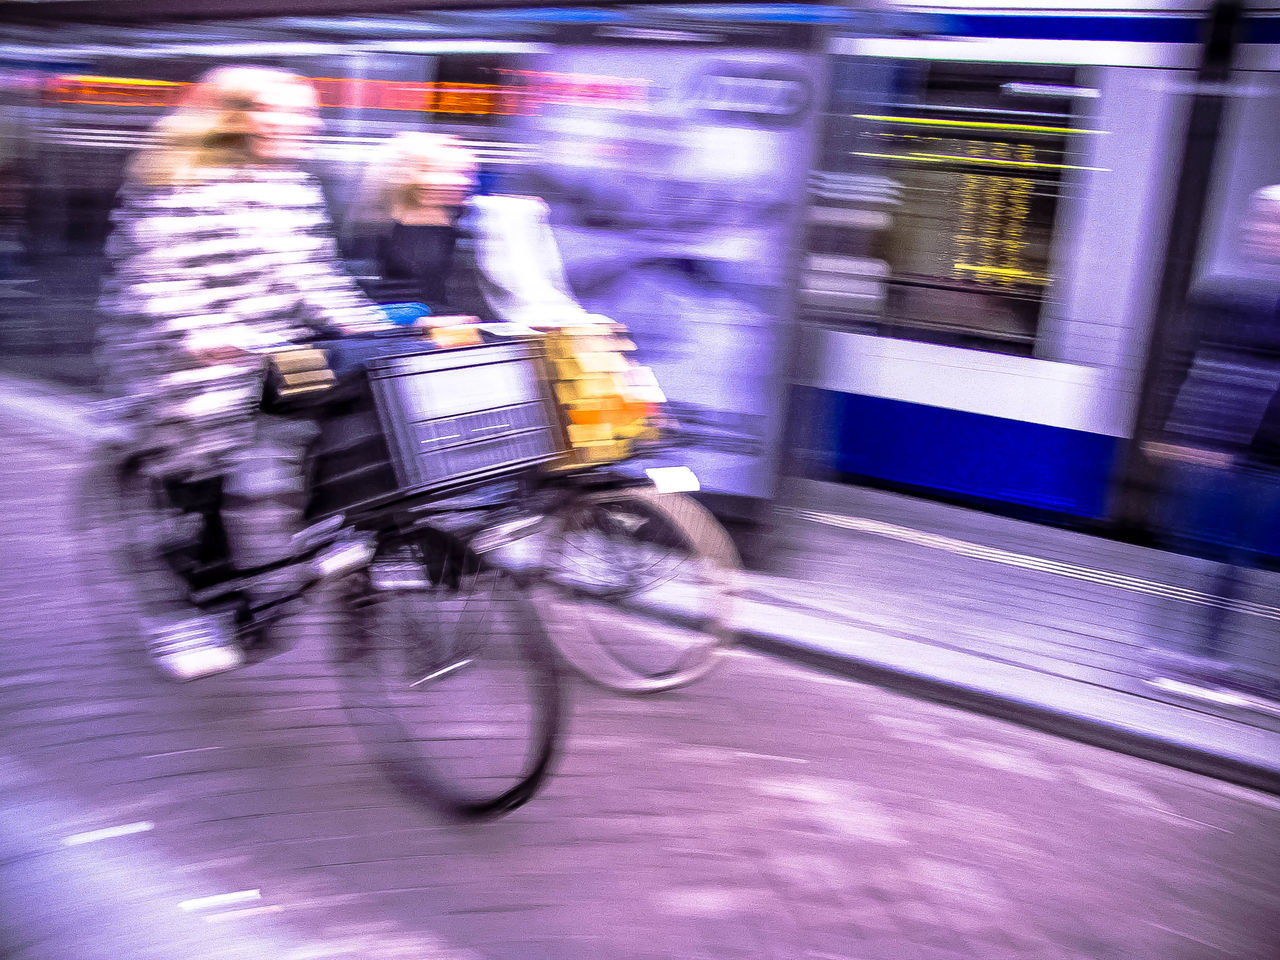 blurred motion, speed, motion, transportation, mode of transport, long exposure, bicycle, riding, public transportation, urgency, defocused, illuminated, outdoors, people, adult, city, one person, day